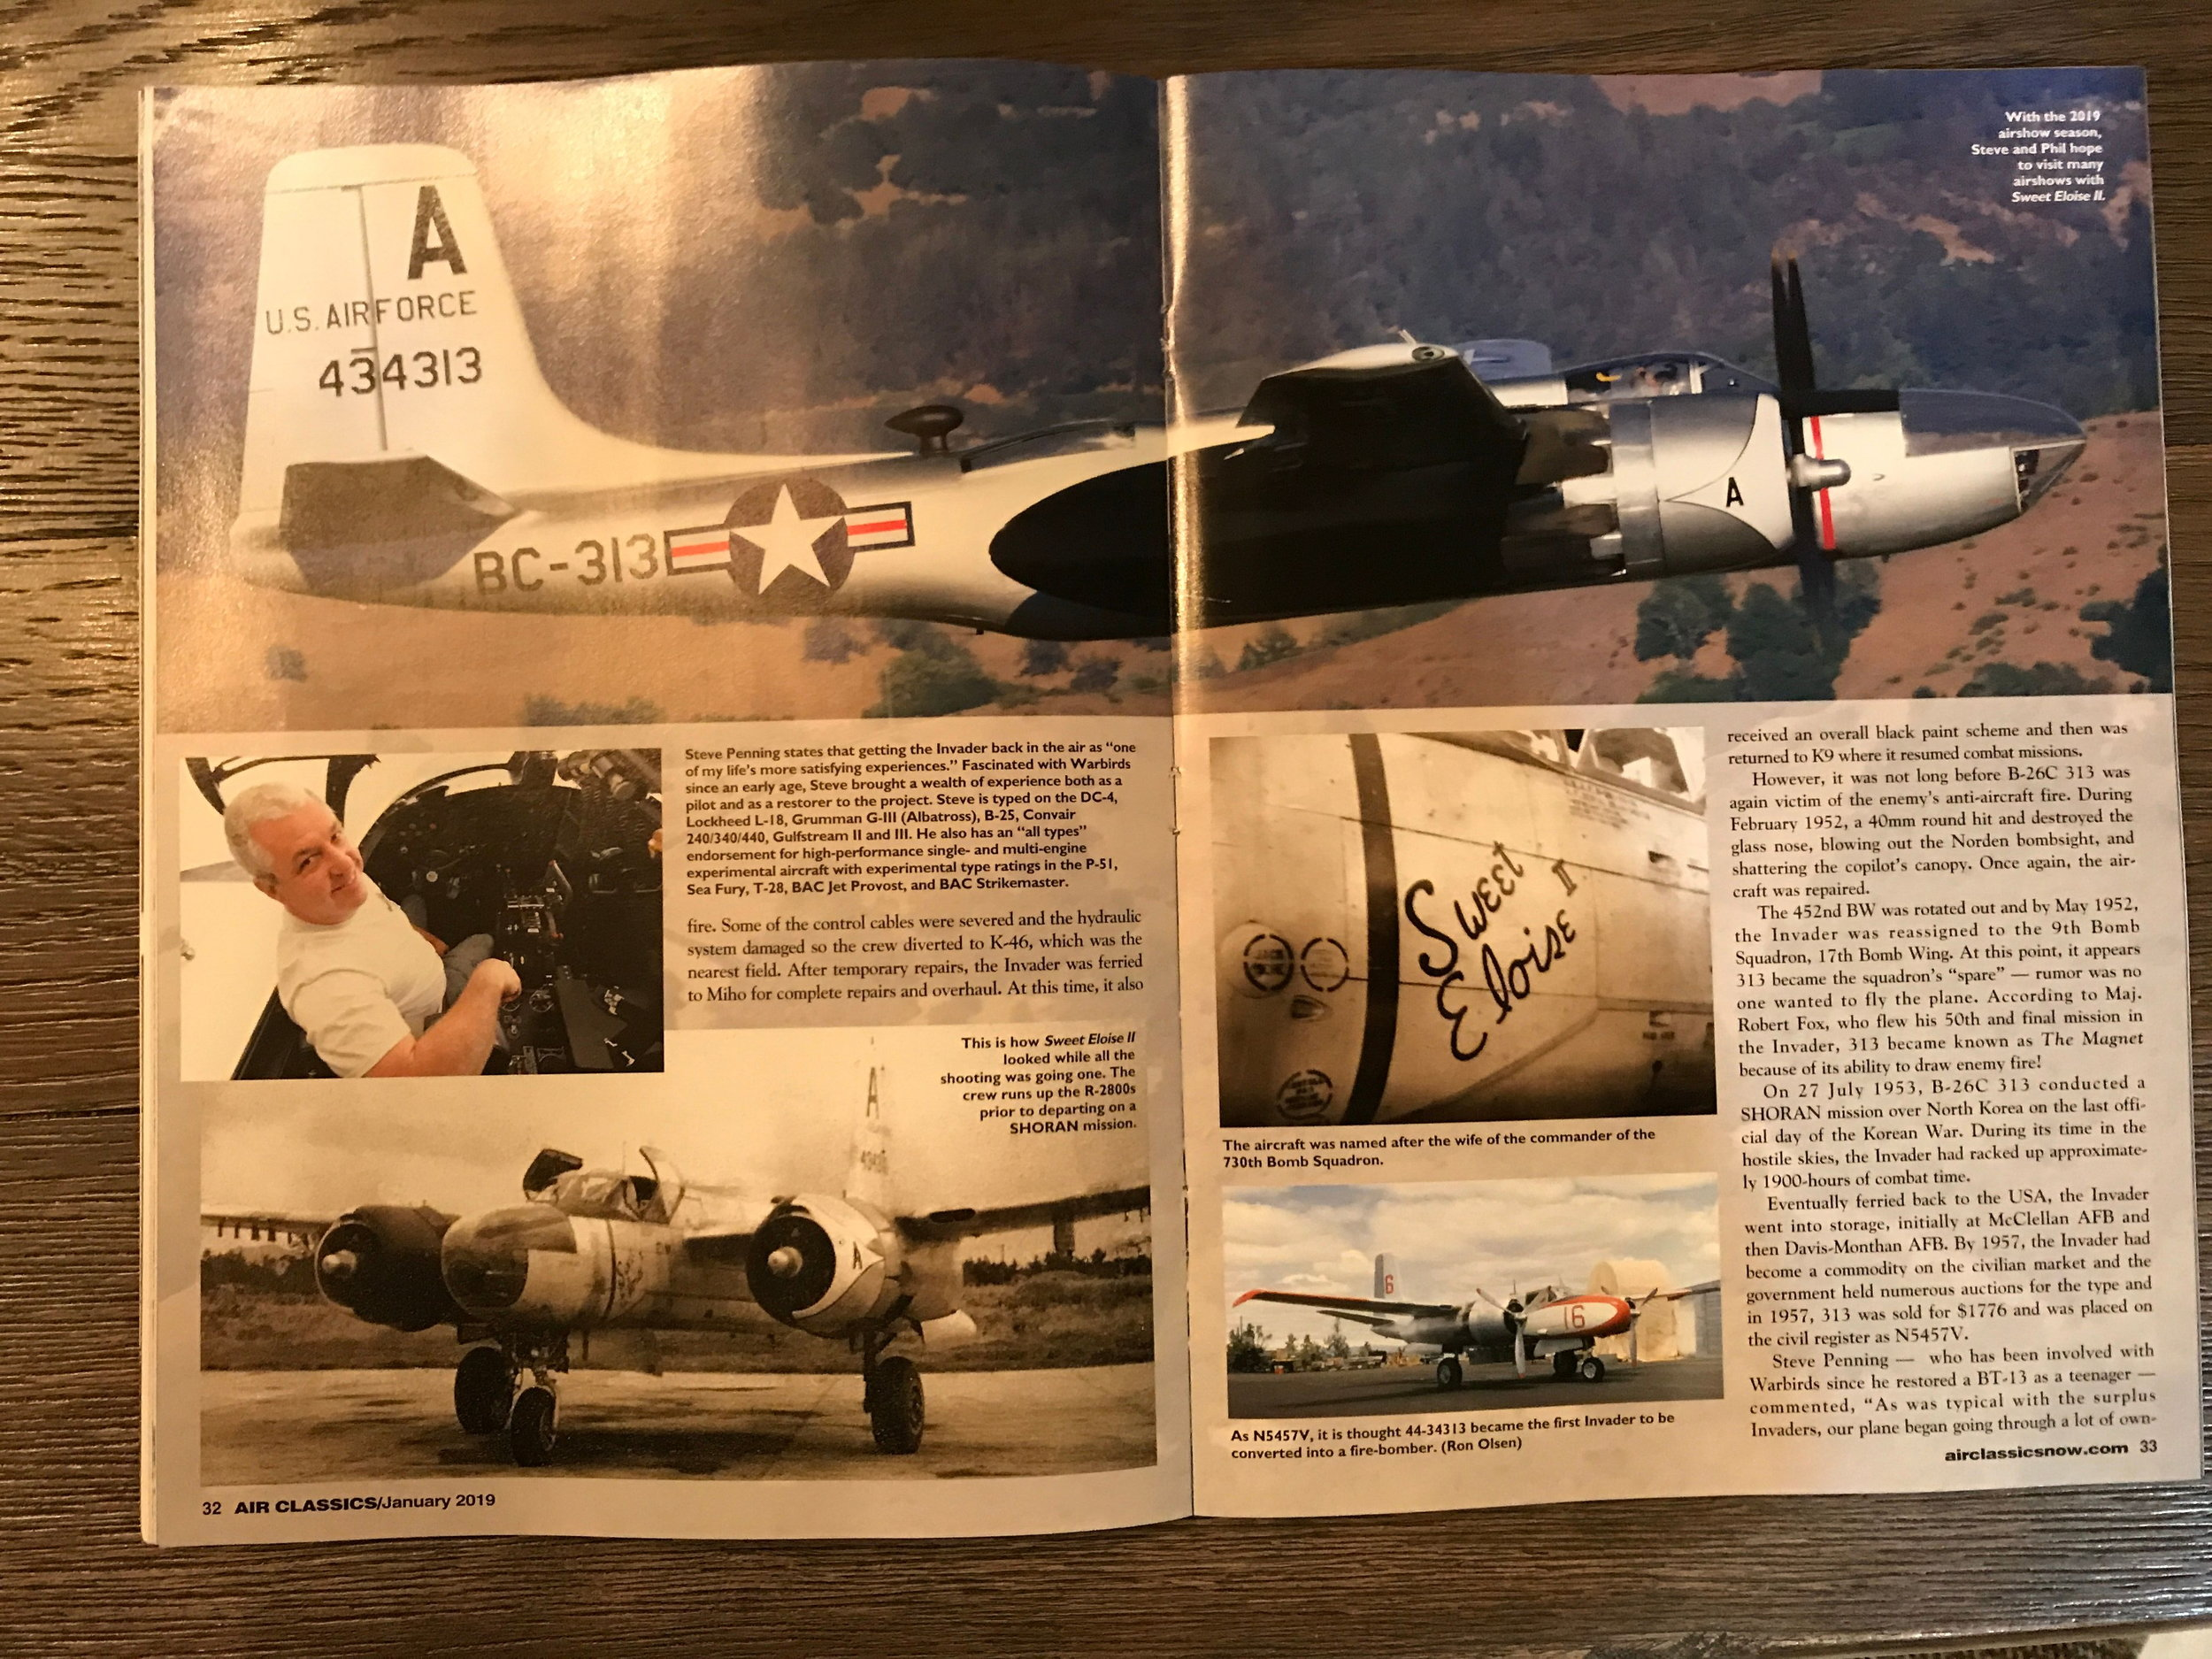 Air Classics January 2019 - Pages 32 and 33